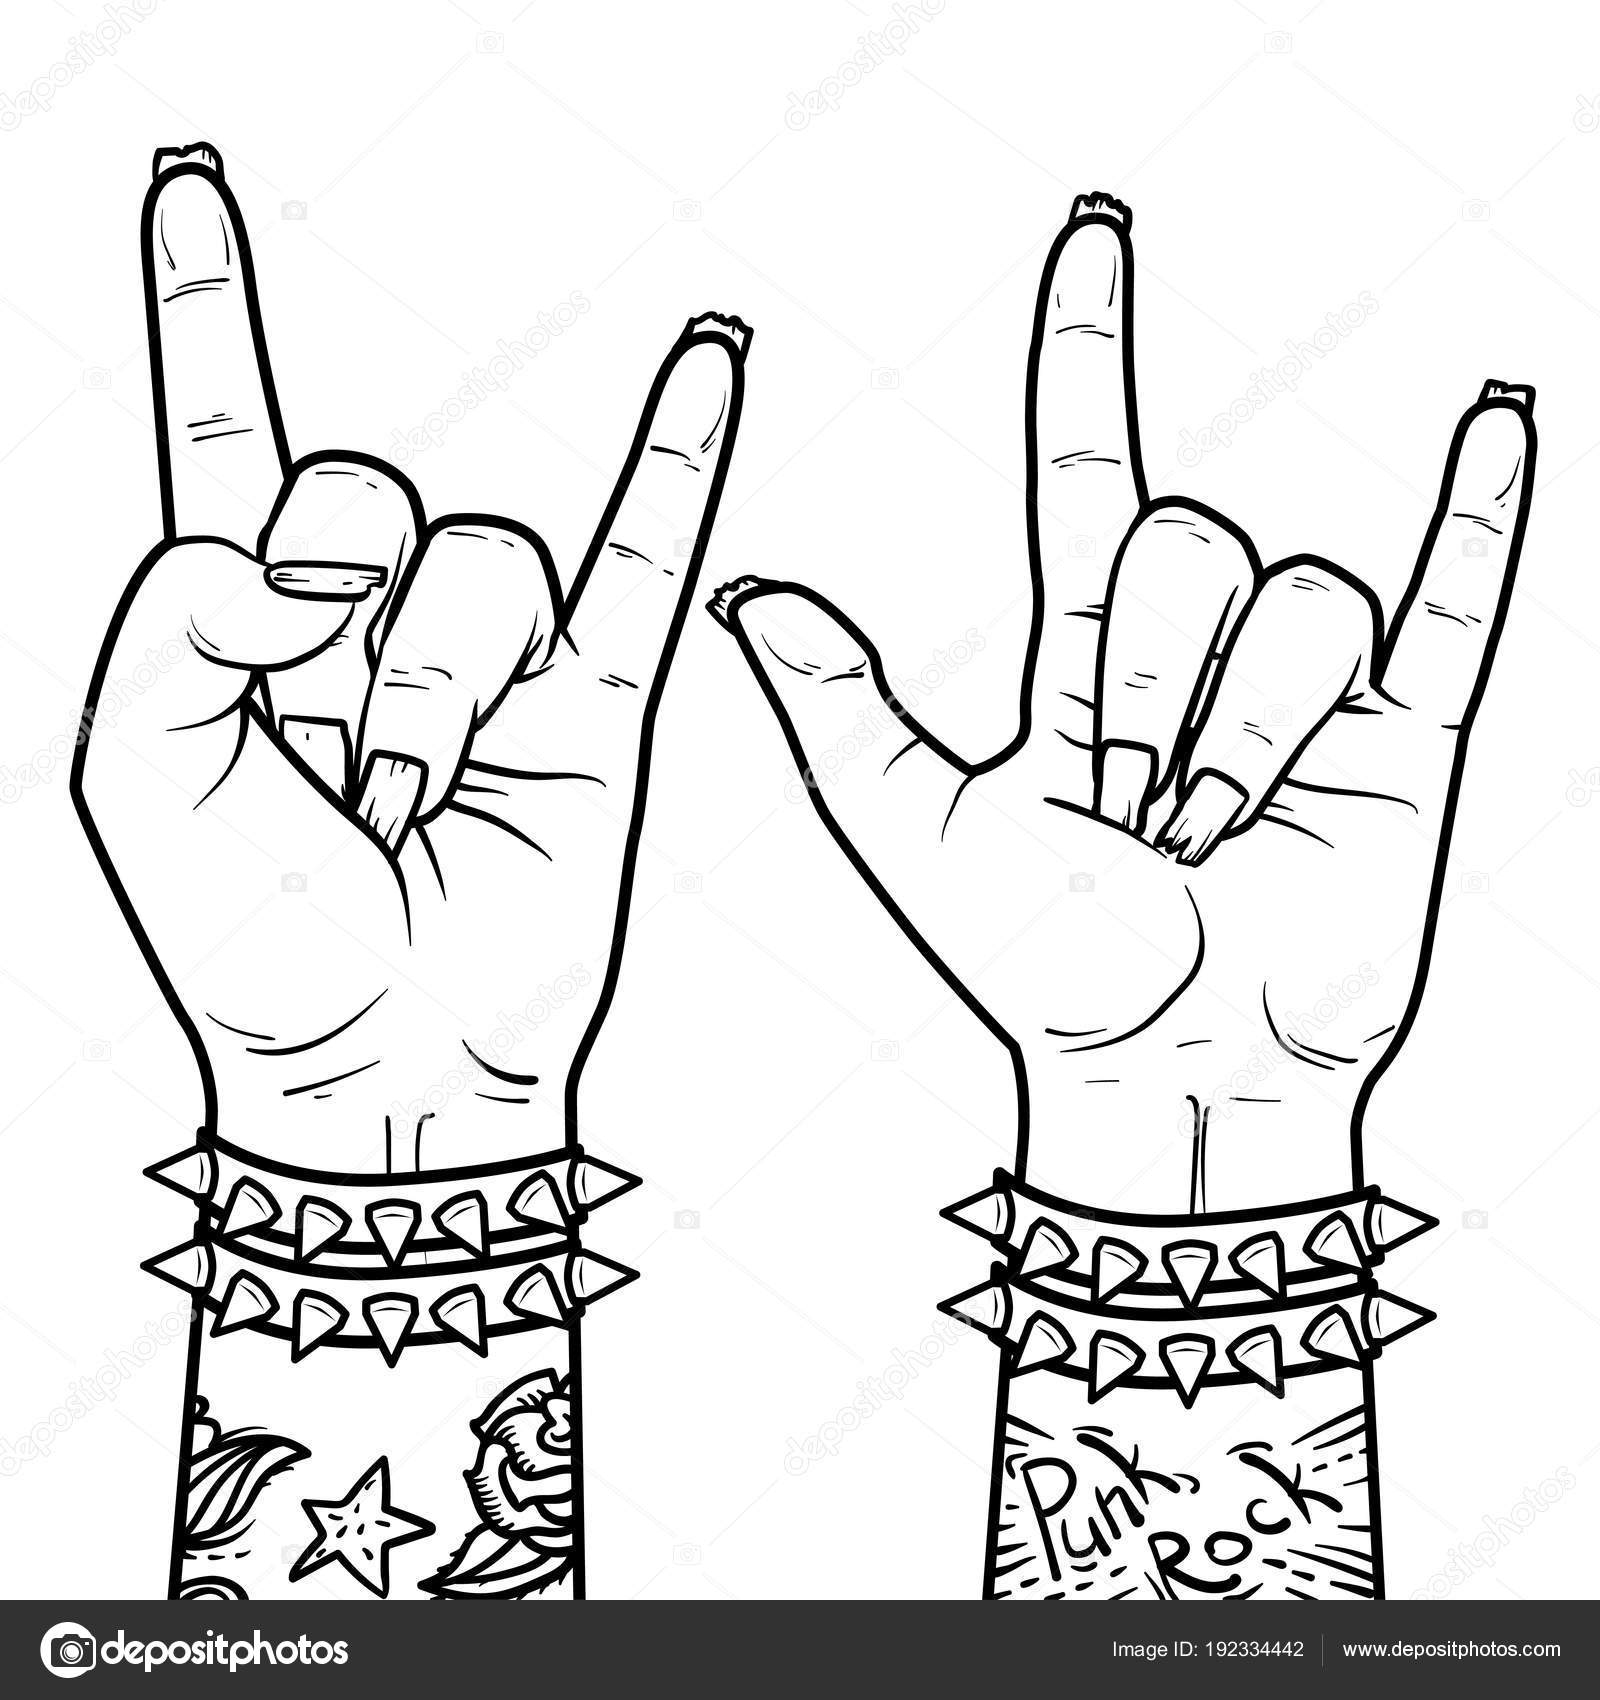 rock coloring pages sg rainbow rocks coloring page by akili amethyst on rock pages coloring